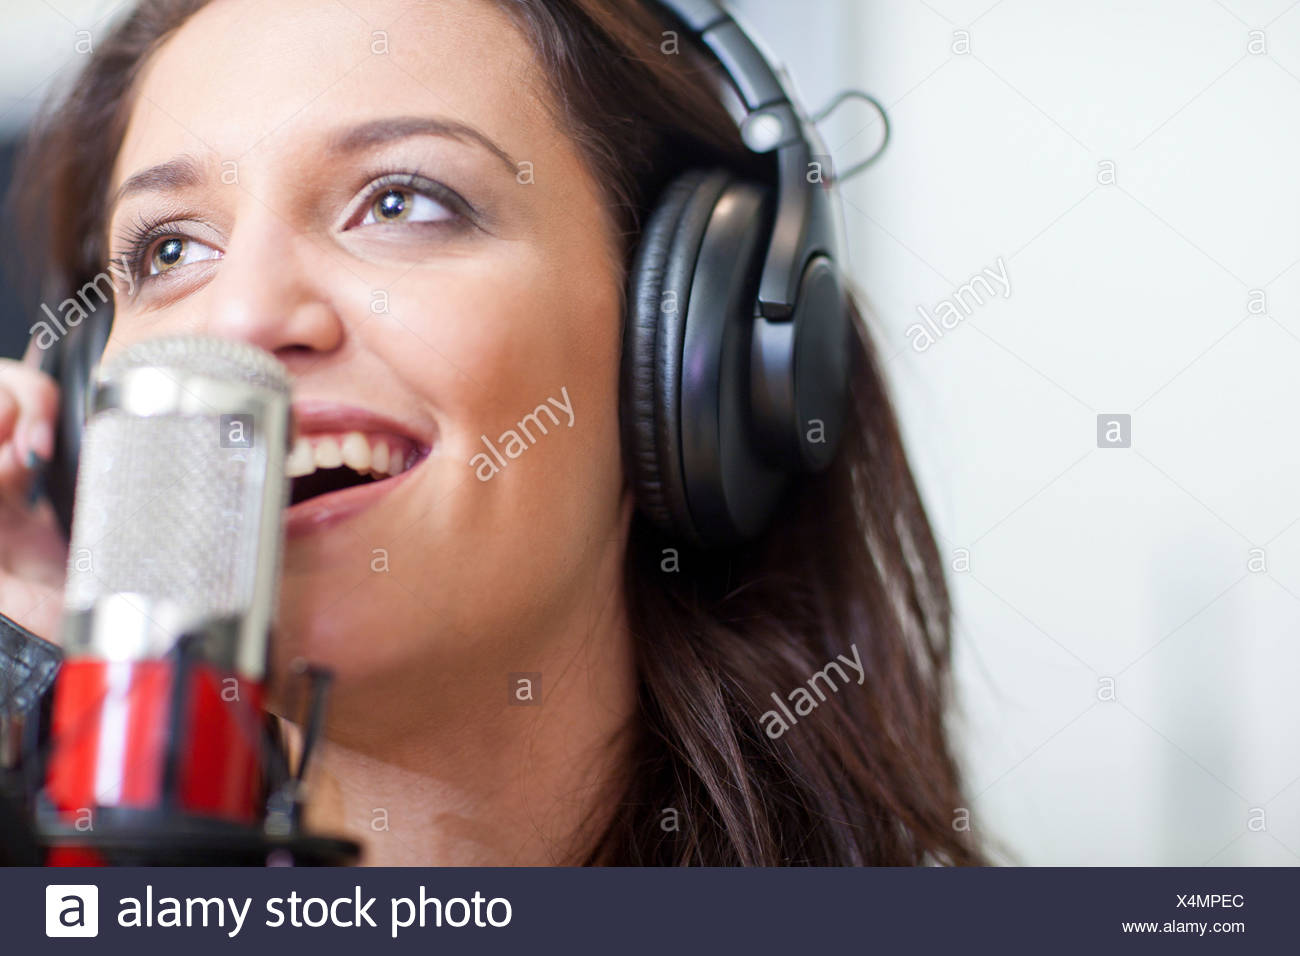 Close up of young female singer - Stock Image